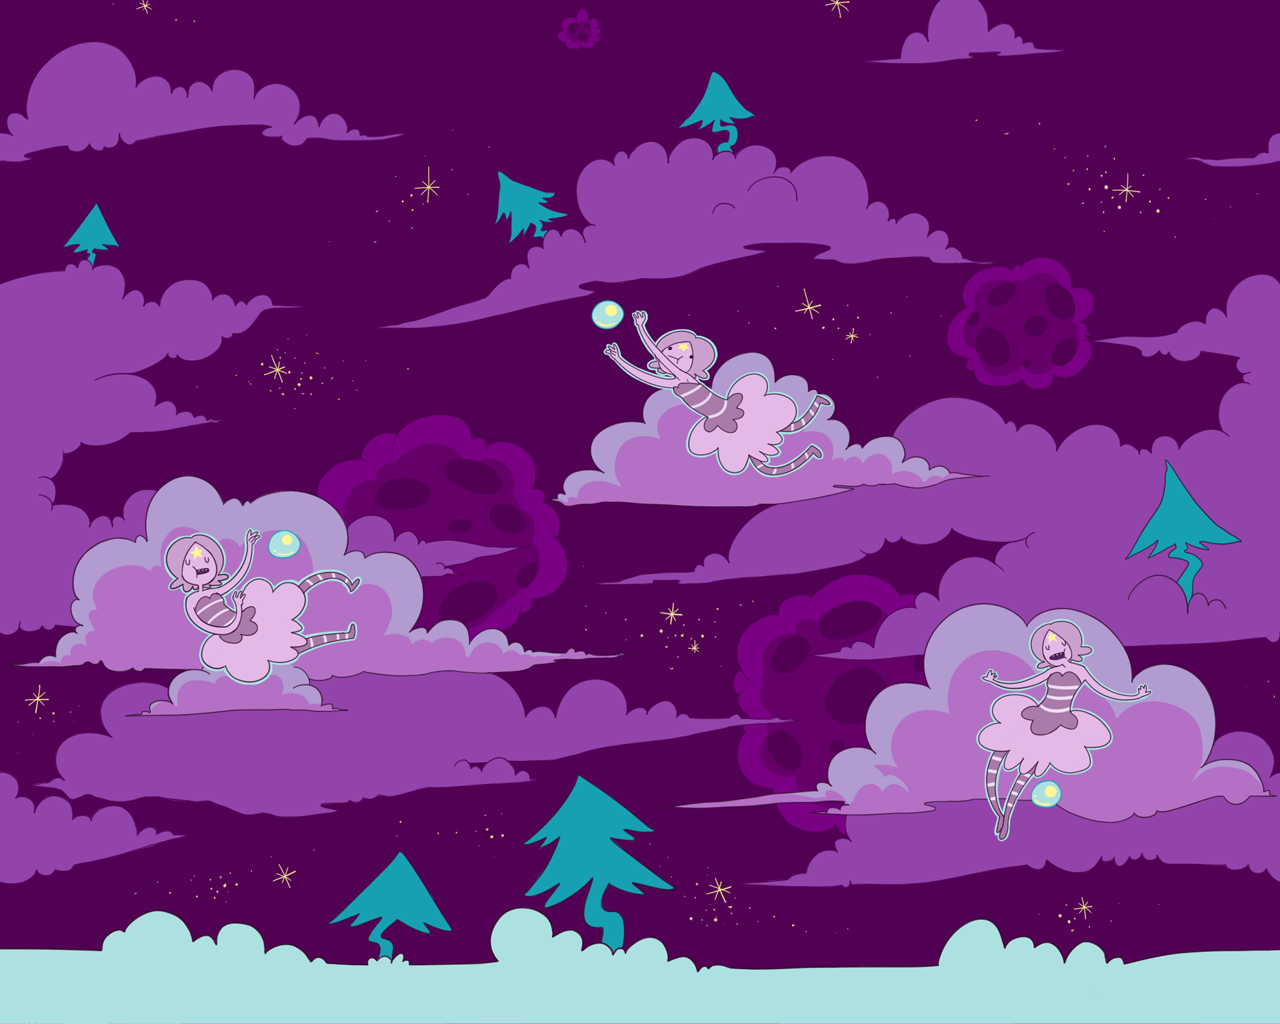 lumpy space by zombiemoose on DeviantArt